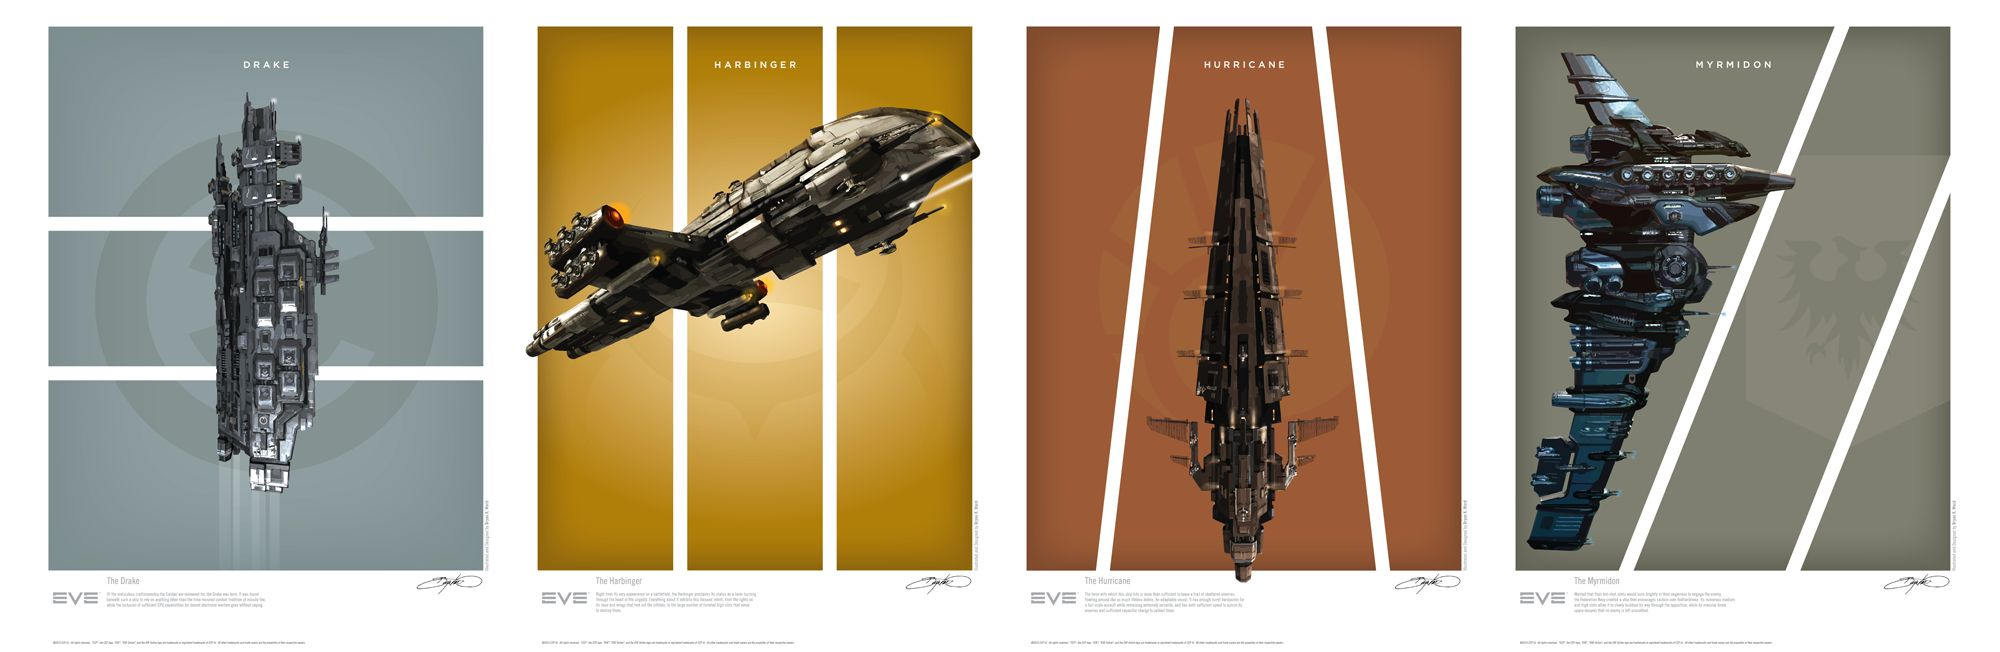 eve online state of the art the eve online print set. Black Bedroom Furniture Sets. Home Design Ideas